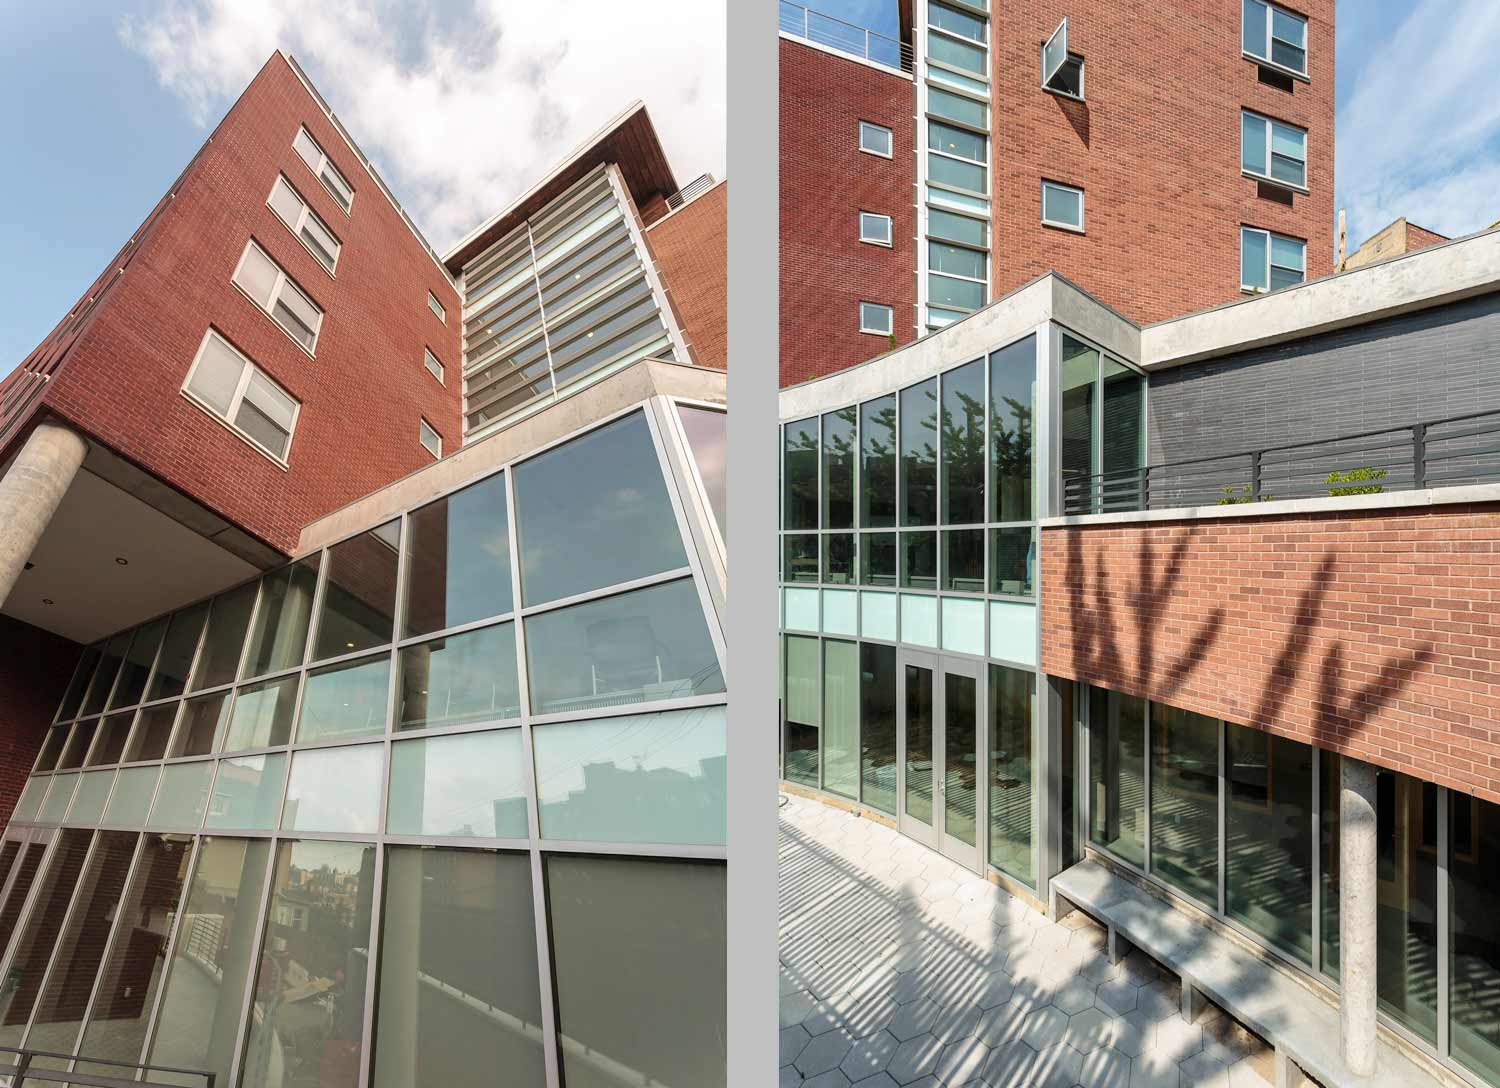 A glass curtain wall fronts the social service offices and lobby, both overlook an outdoor terrace.